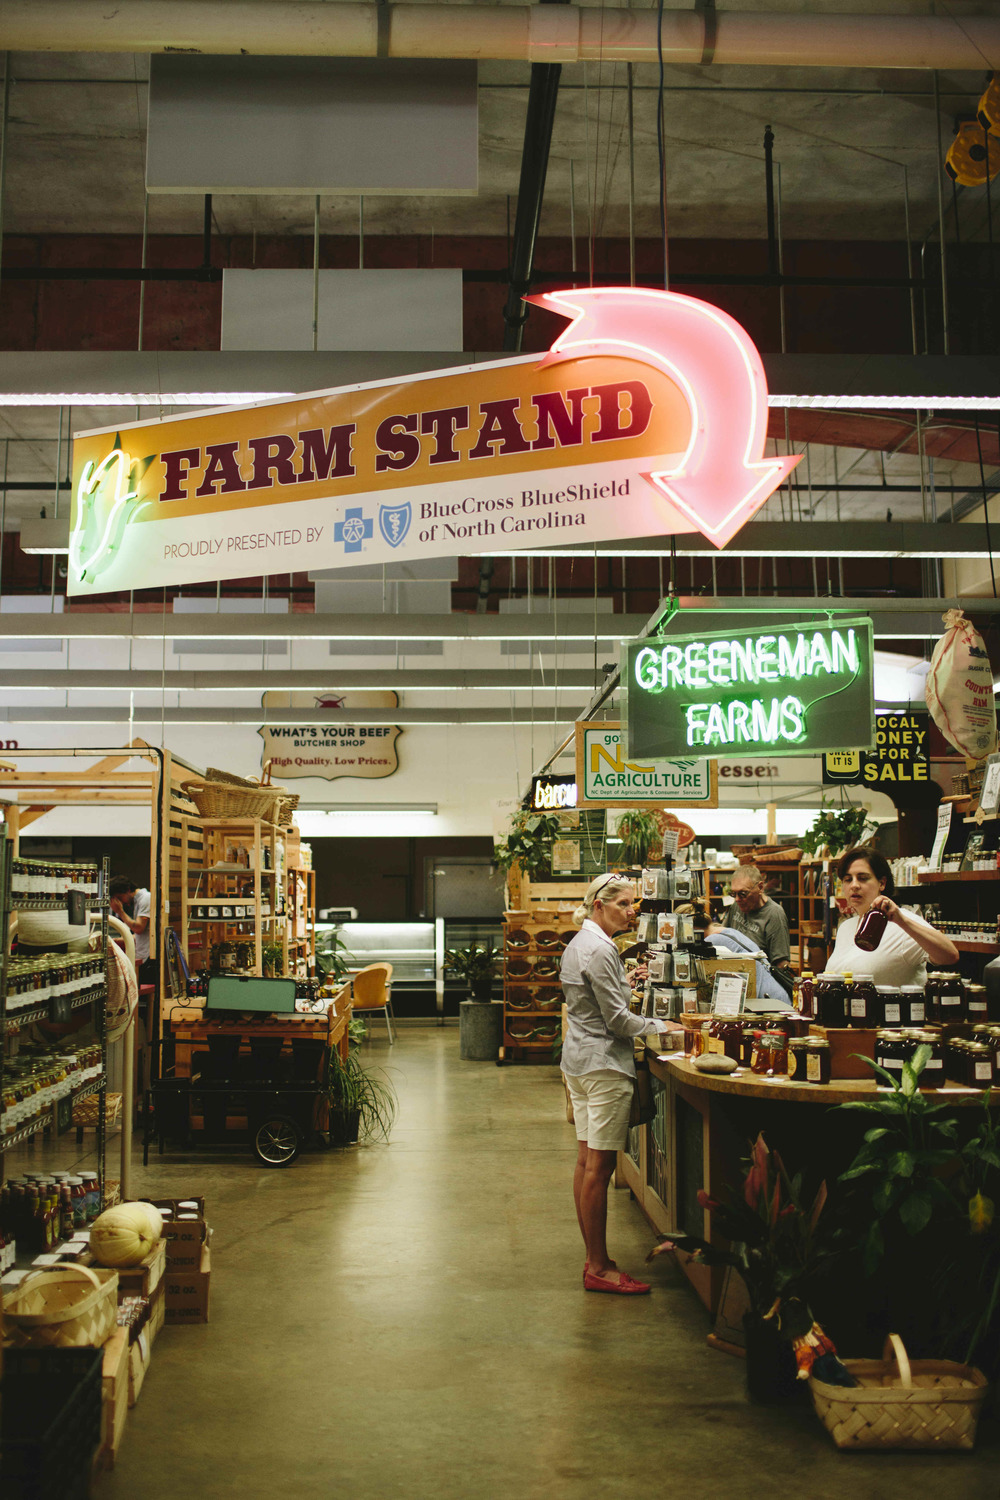 AshevilleFolk Summer City Guide: Charlotte, NC with Megan Gielow. 7th Street Public Market. Always busy, always good. Home to many small eateries and markets.